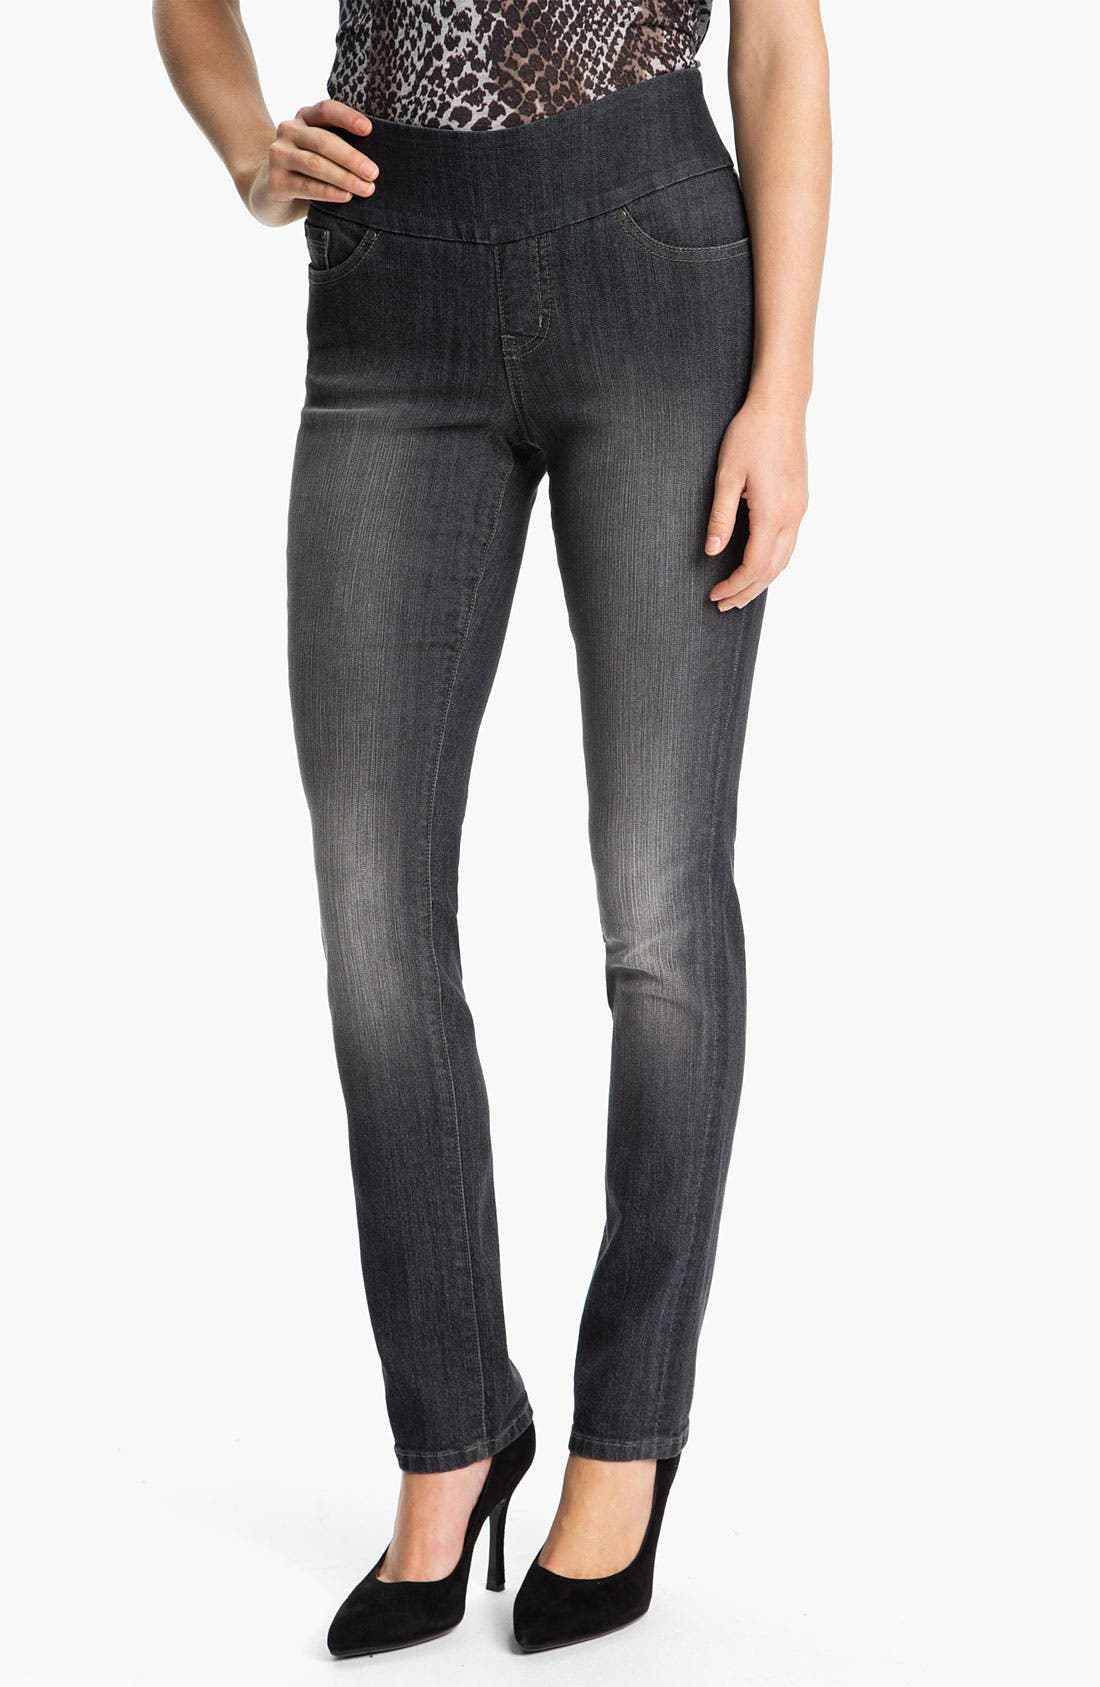 Alternate Image 1 Selected - Jag Jeans 'Malia' Slim Leg Stretch Jeans (Petite)